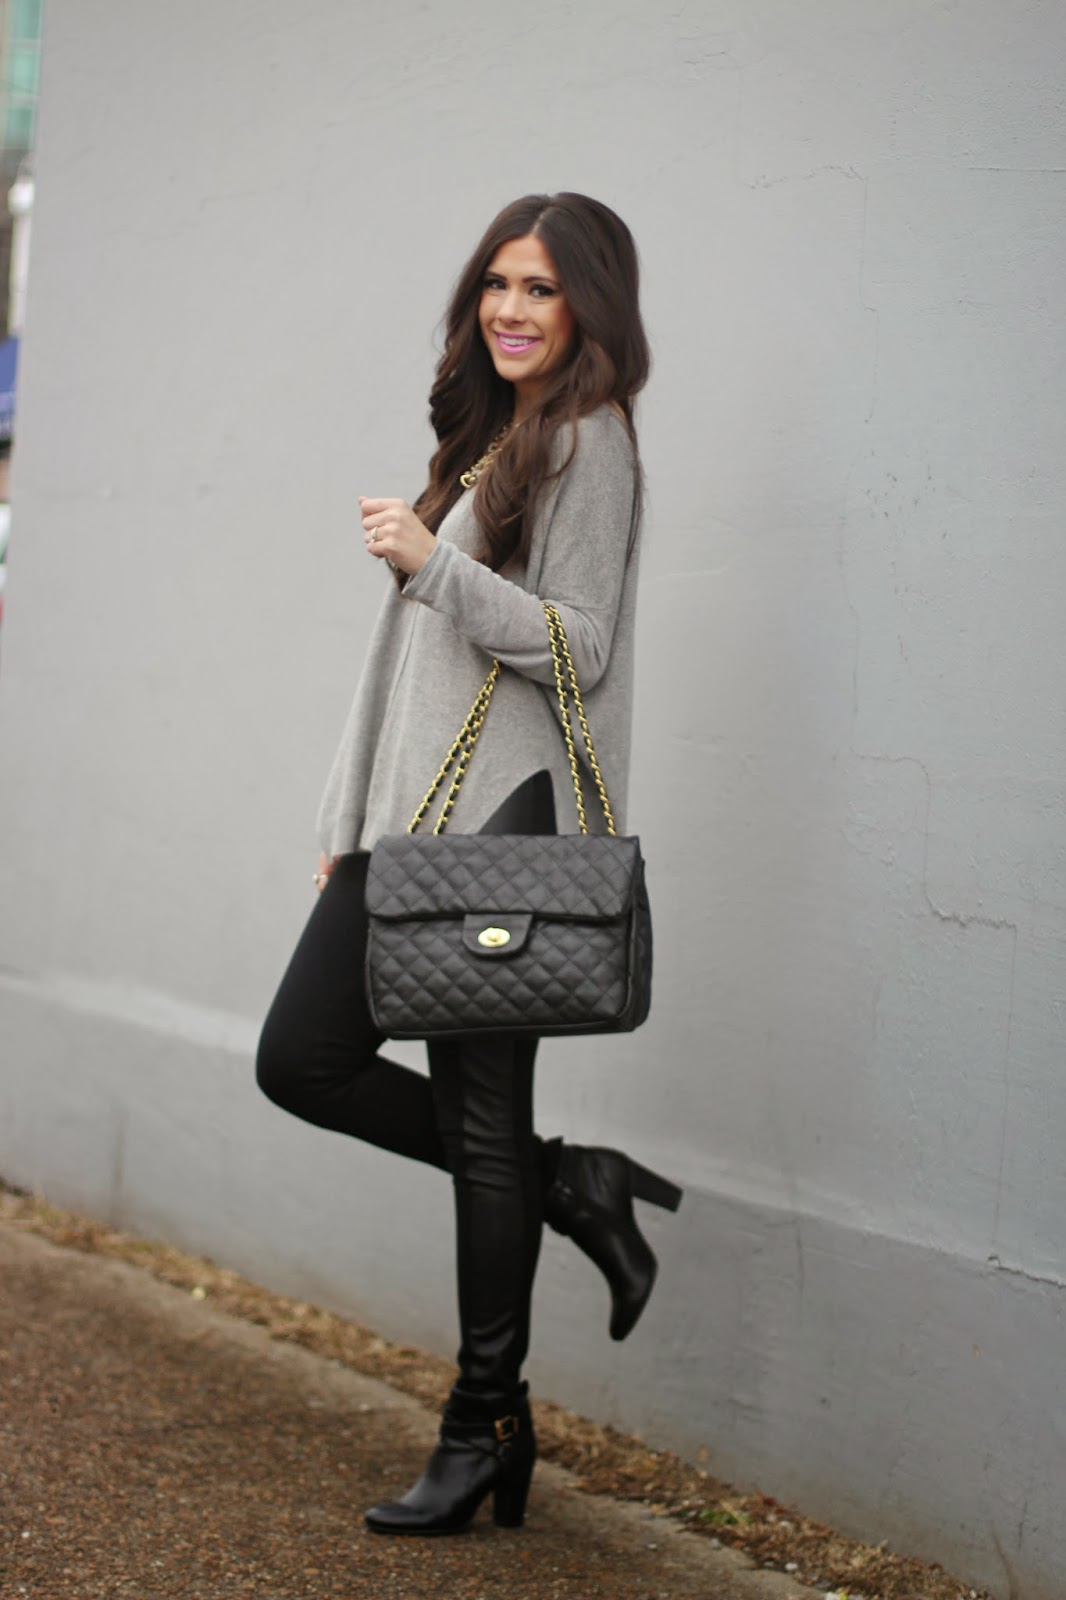 www.TheSweetestThingBlog.com, Emily Gemma, Pink Lipstick, Faux Leather Leggings, Black Quilted Bag, Hatch Jewelry, Druzy Ring, Fashion Blogger, Style Blogger, All Black Outfit, Windsor Store, MAc Lipstick, Pinterest Fashion